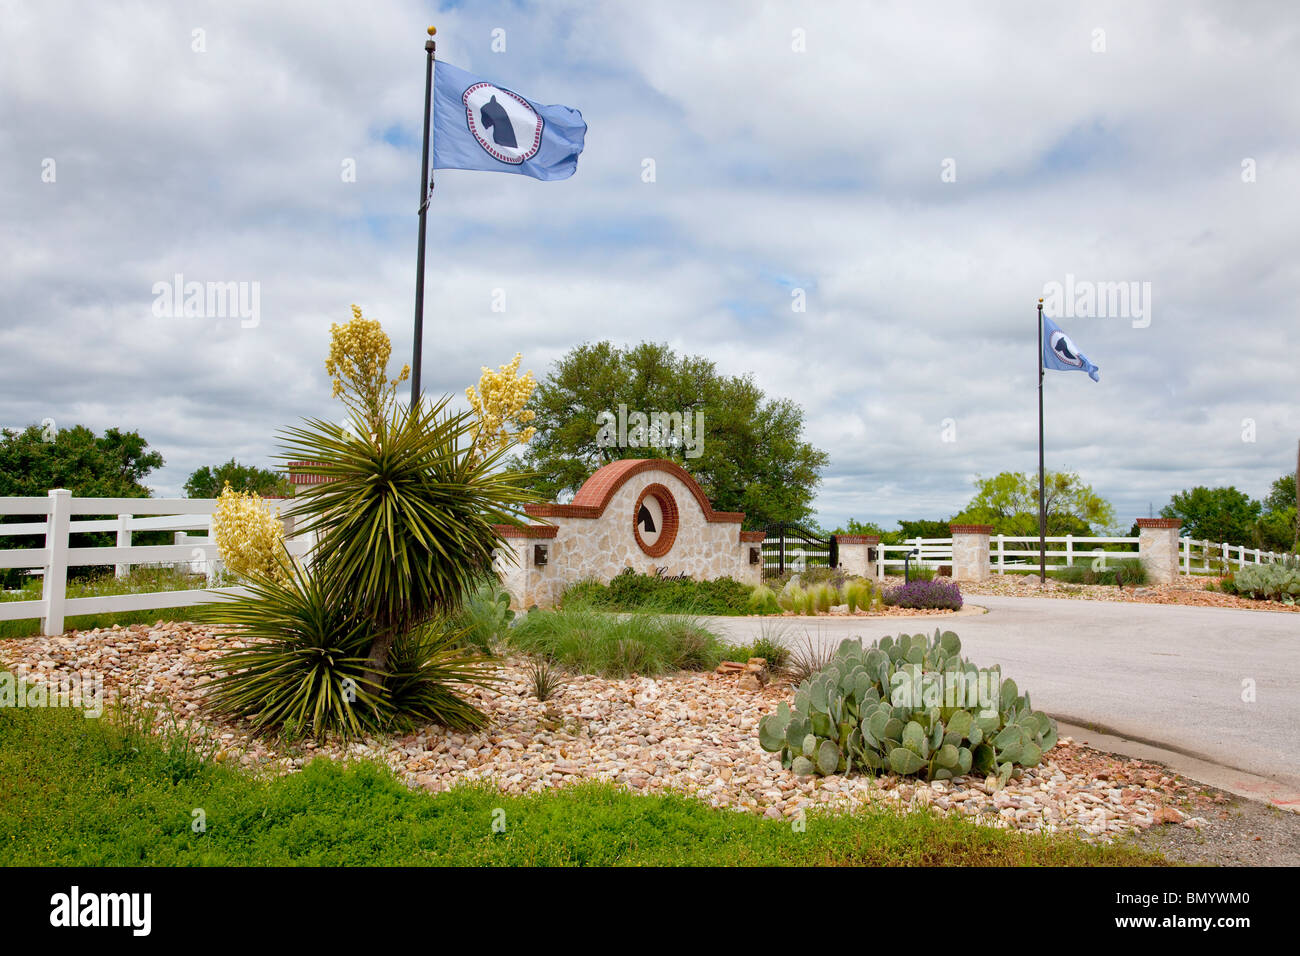 A ranch entrance gate with flag blooming yucca plants near Llano, Texas, USA. - Stock Image